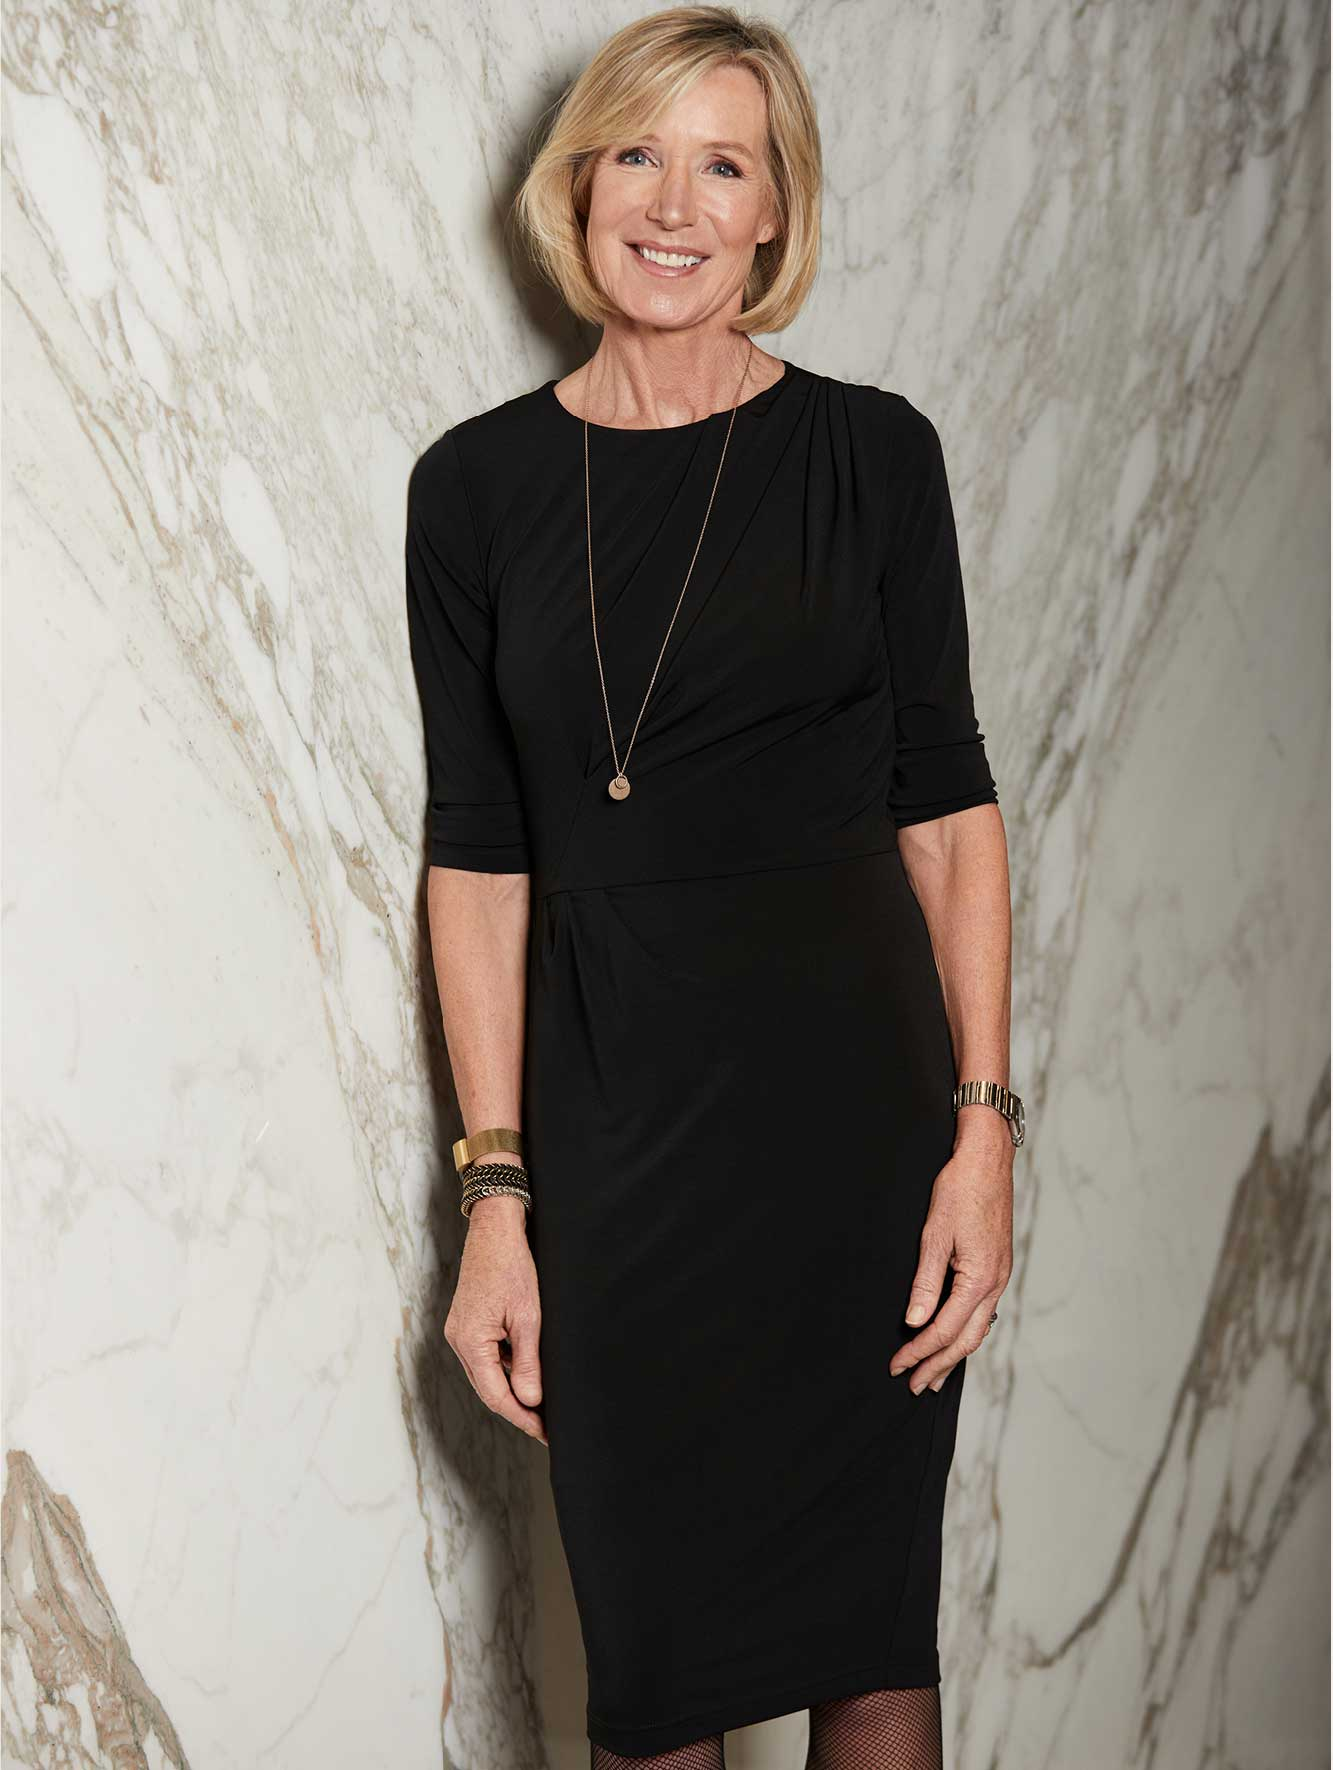 Anke Summerhill wears the Clifton Dress Black Jersey